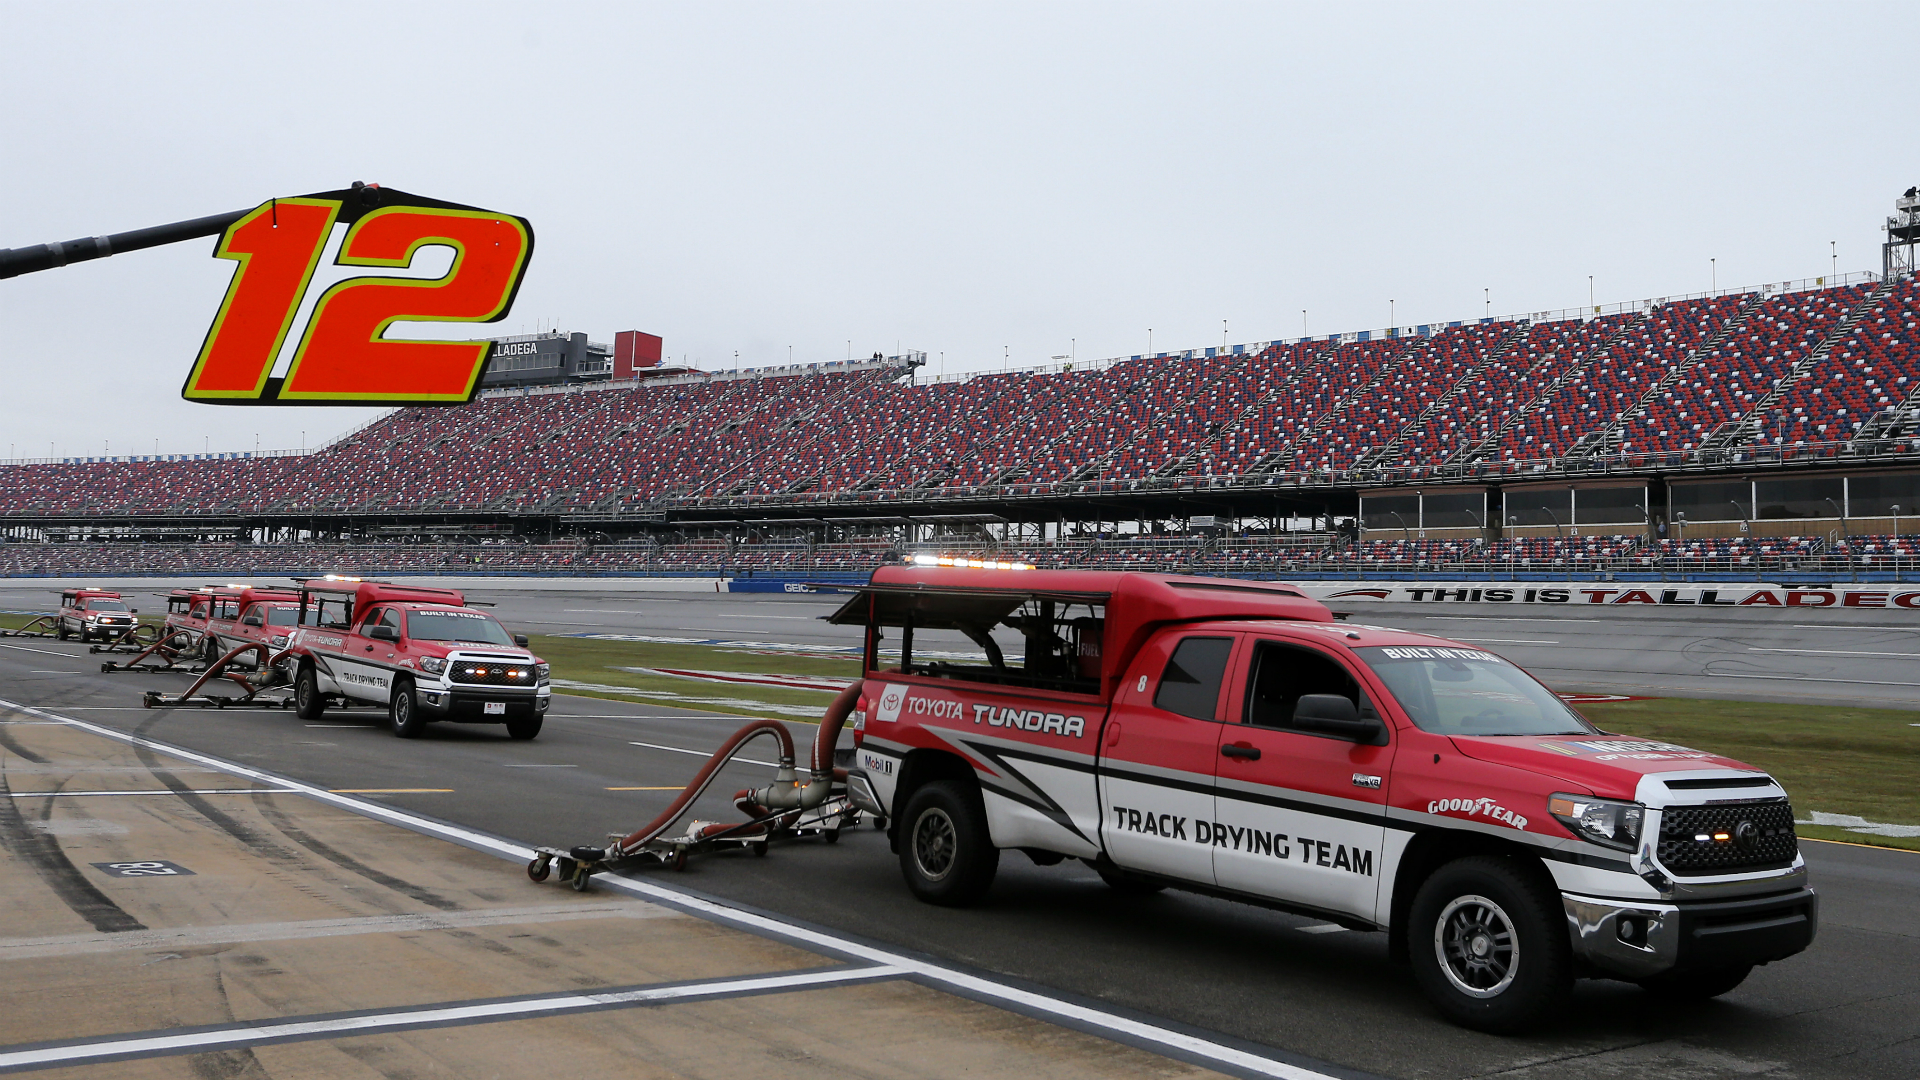 NASCAR weather update: Race at Talladega to restart Monday after rain delay – Sporting News